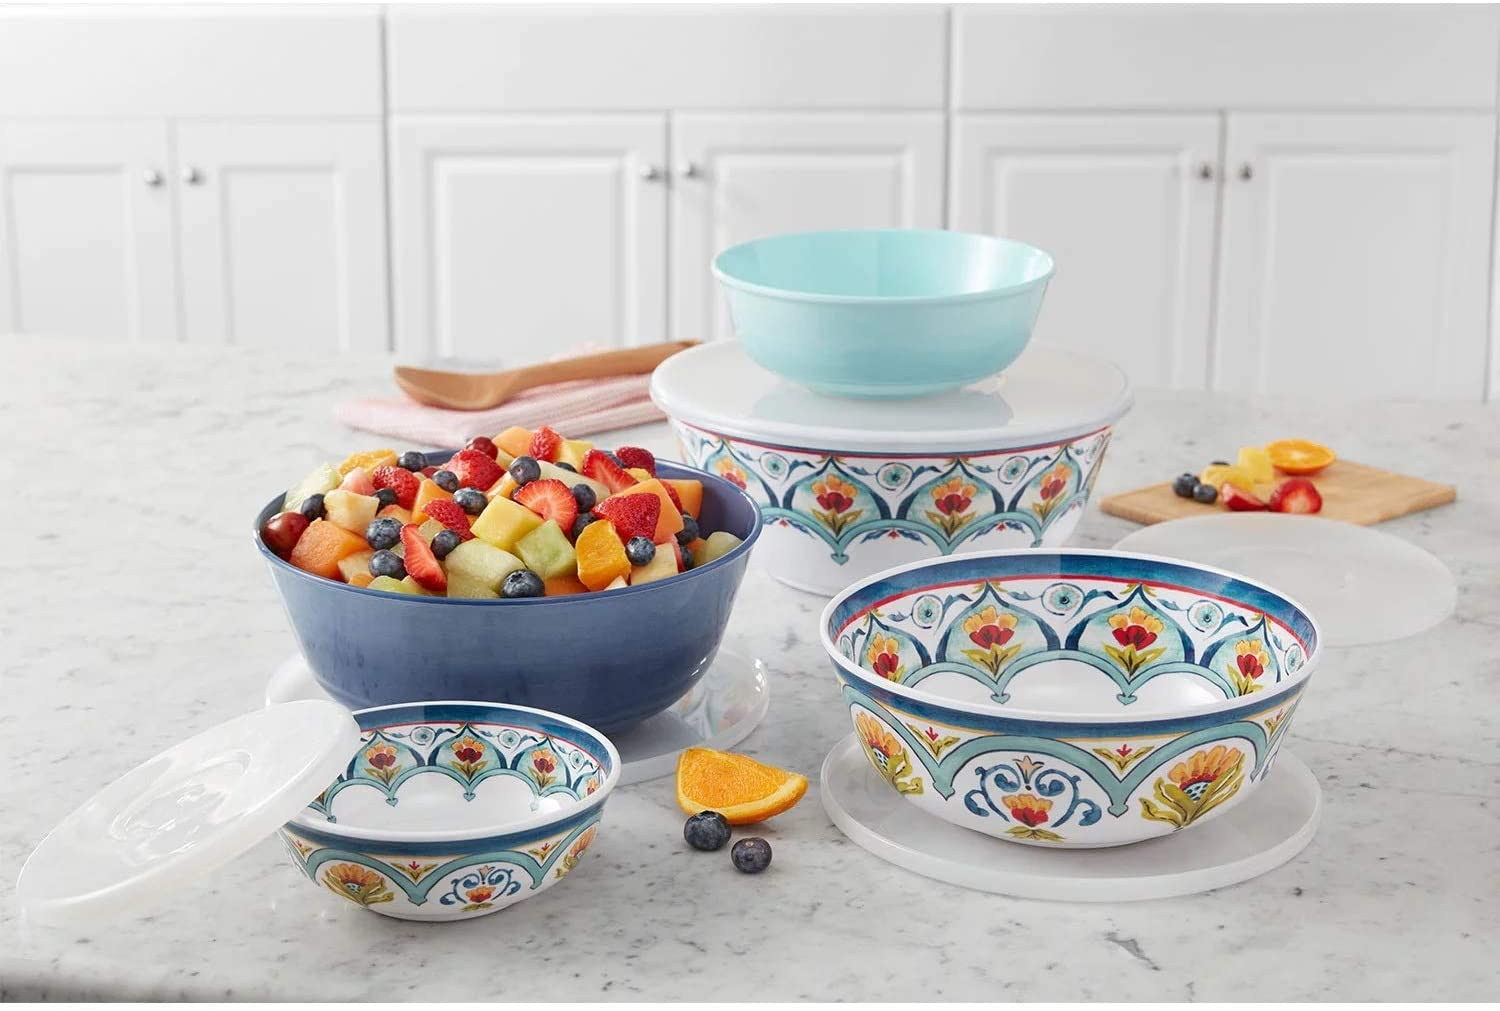 Member's Popular shop is the lowest price challenge Mark 5-Piece Melamine Mixing Max 60% OFF Bowl Set Talave Lids with